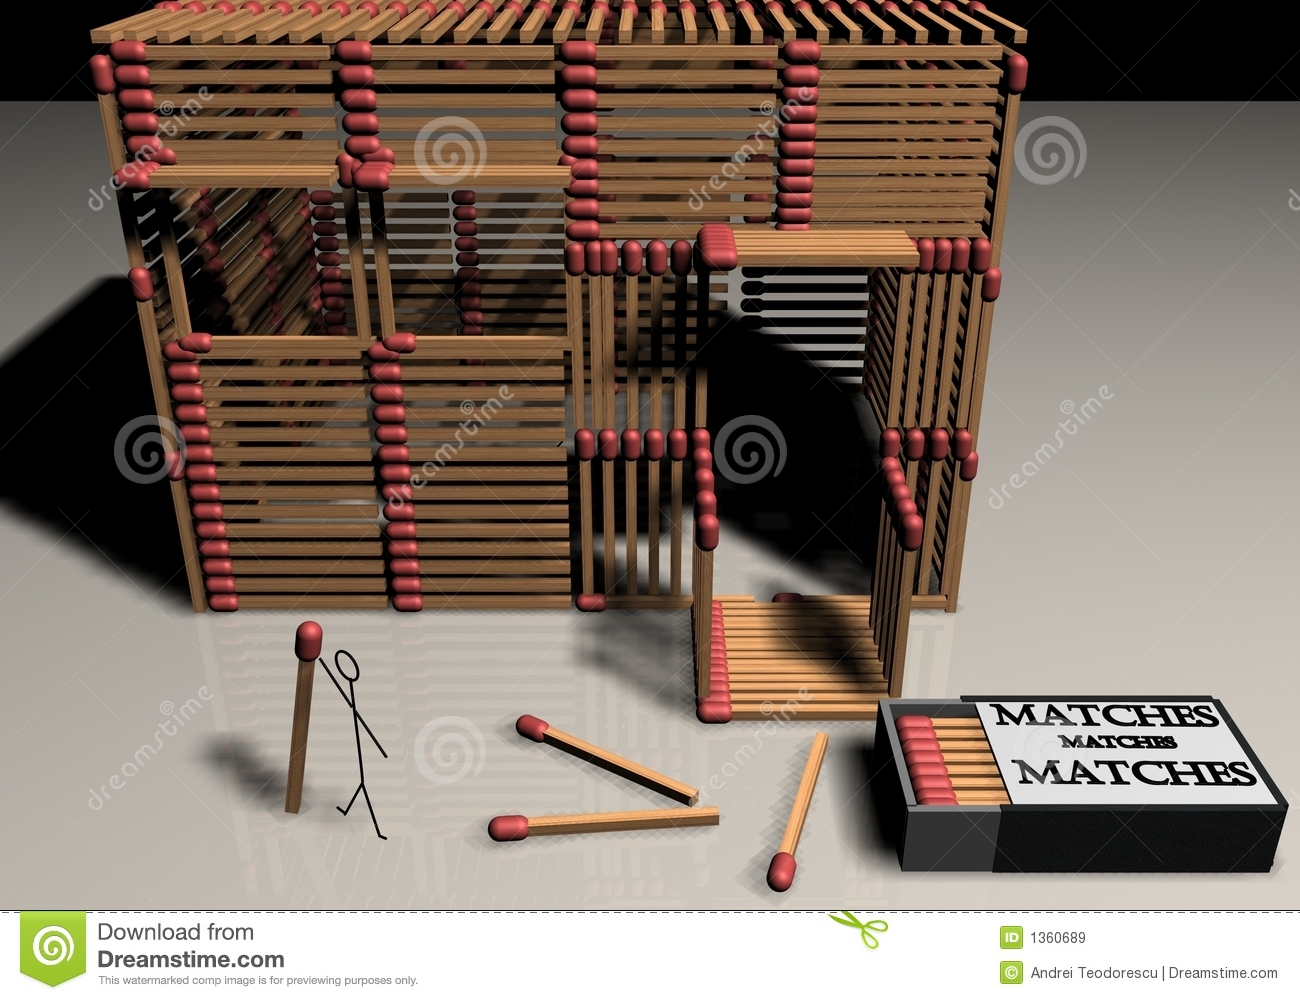 Matchstick model houses